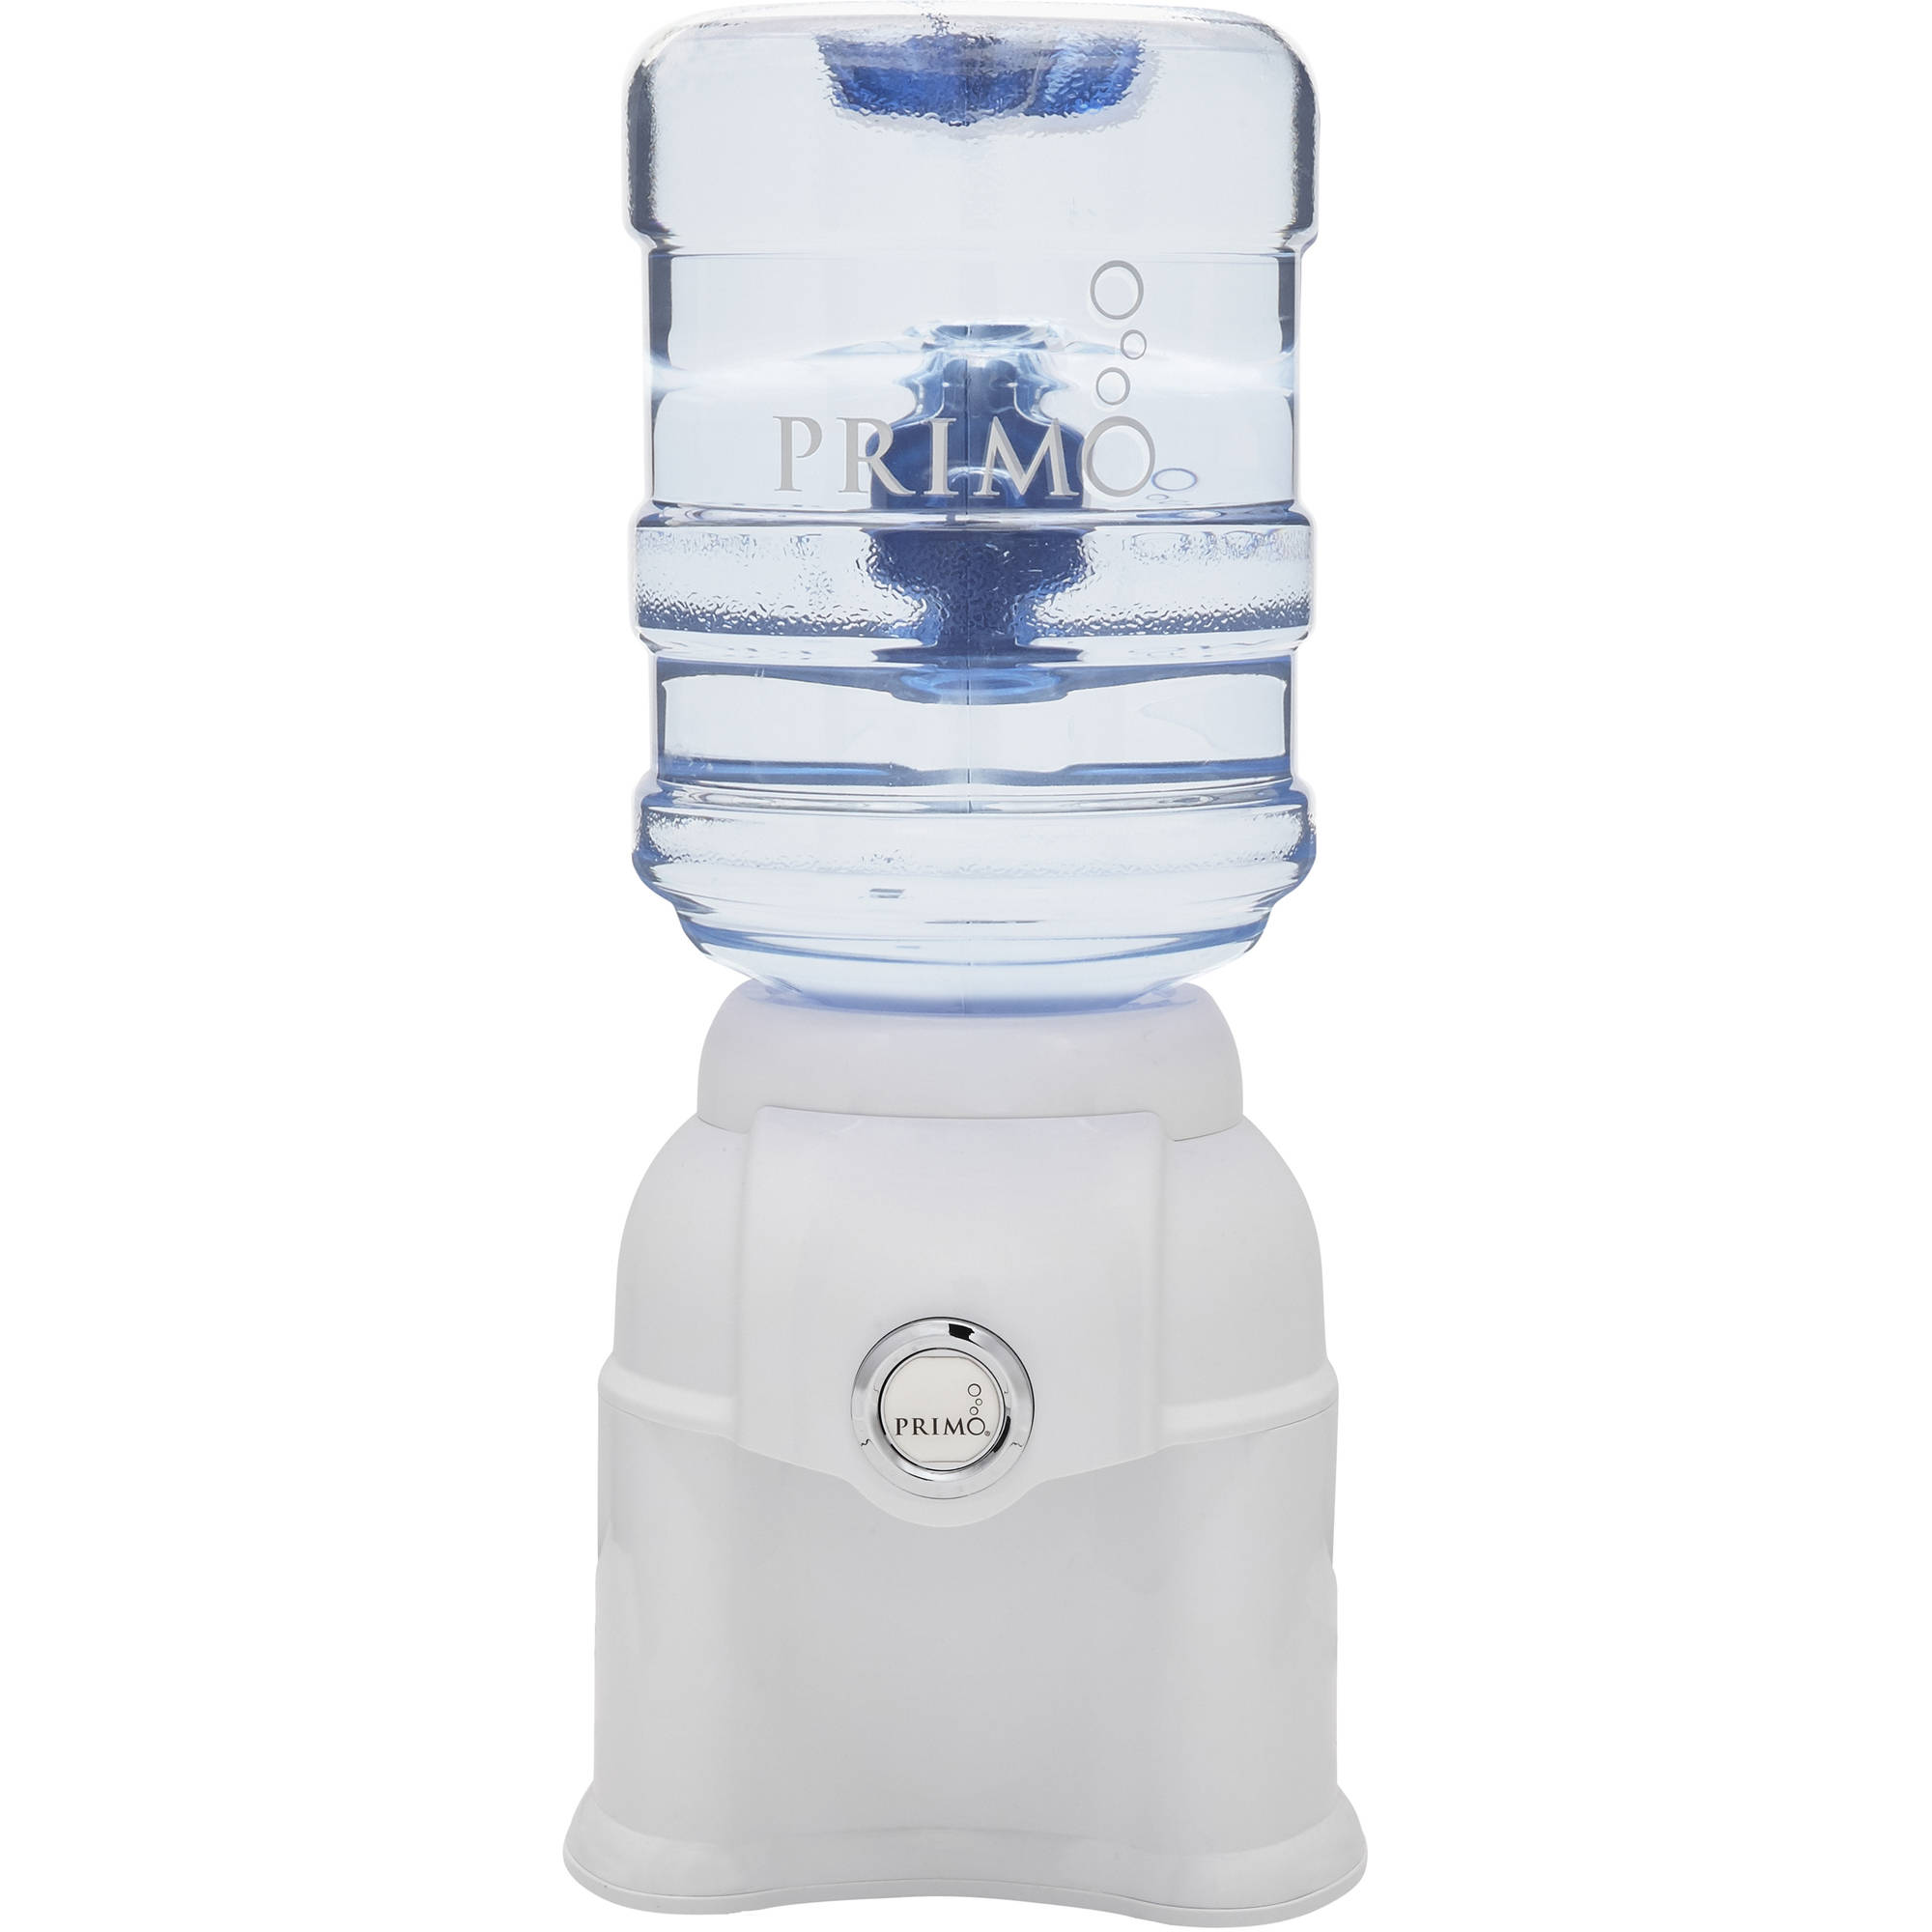 Primo Table Top Water Dispenser, White